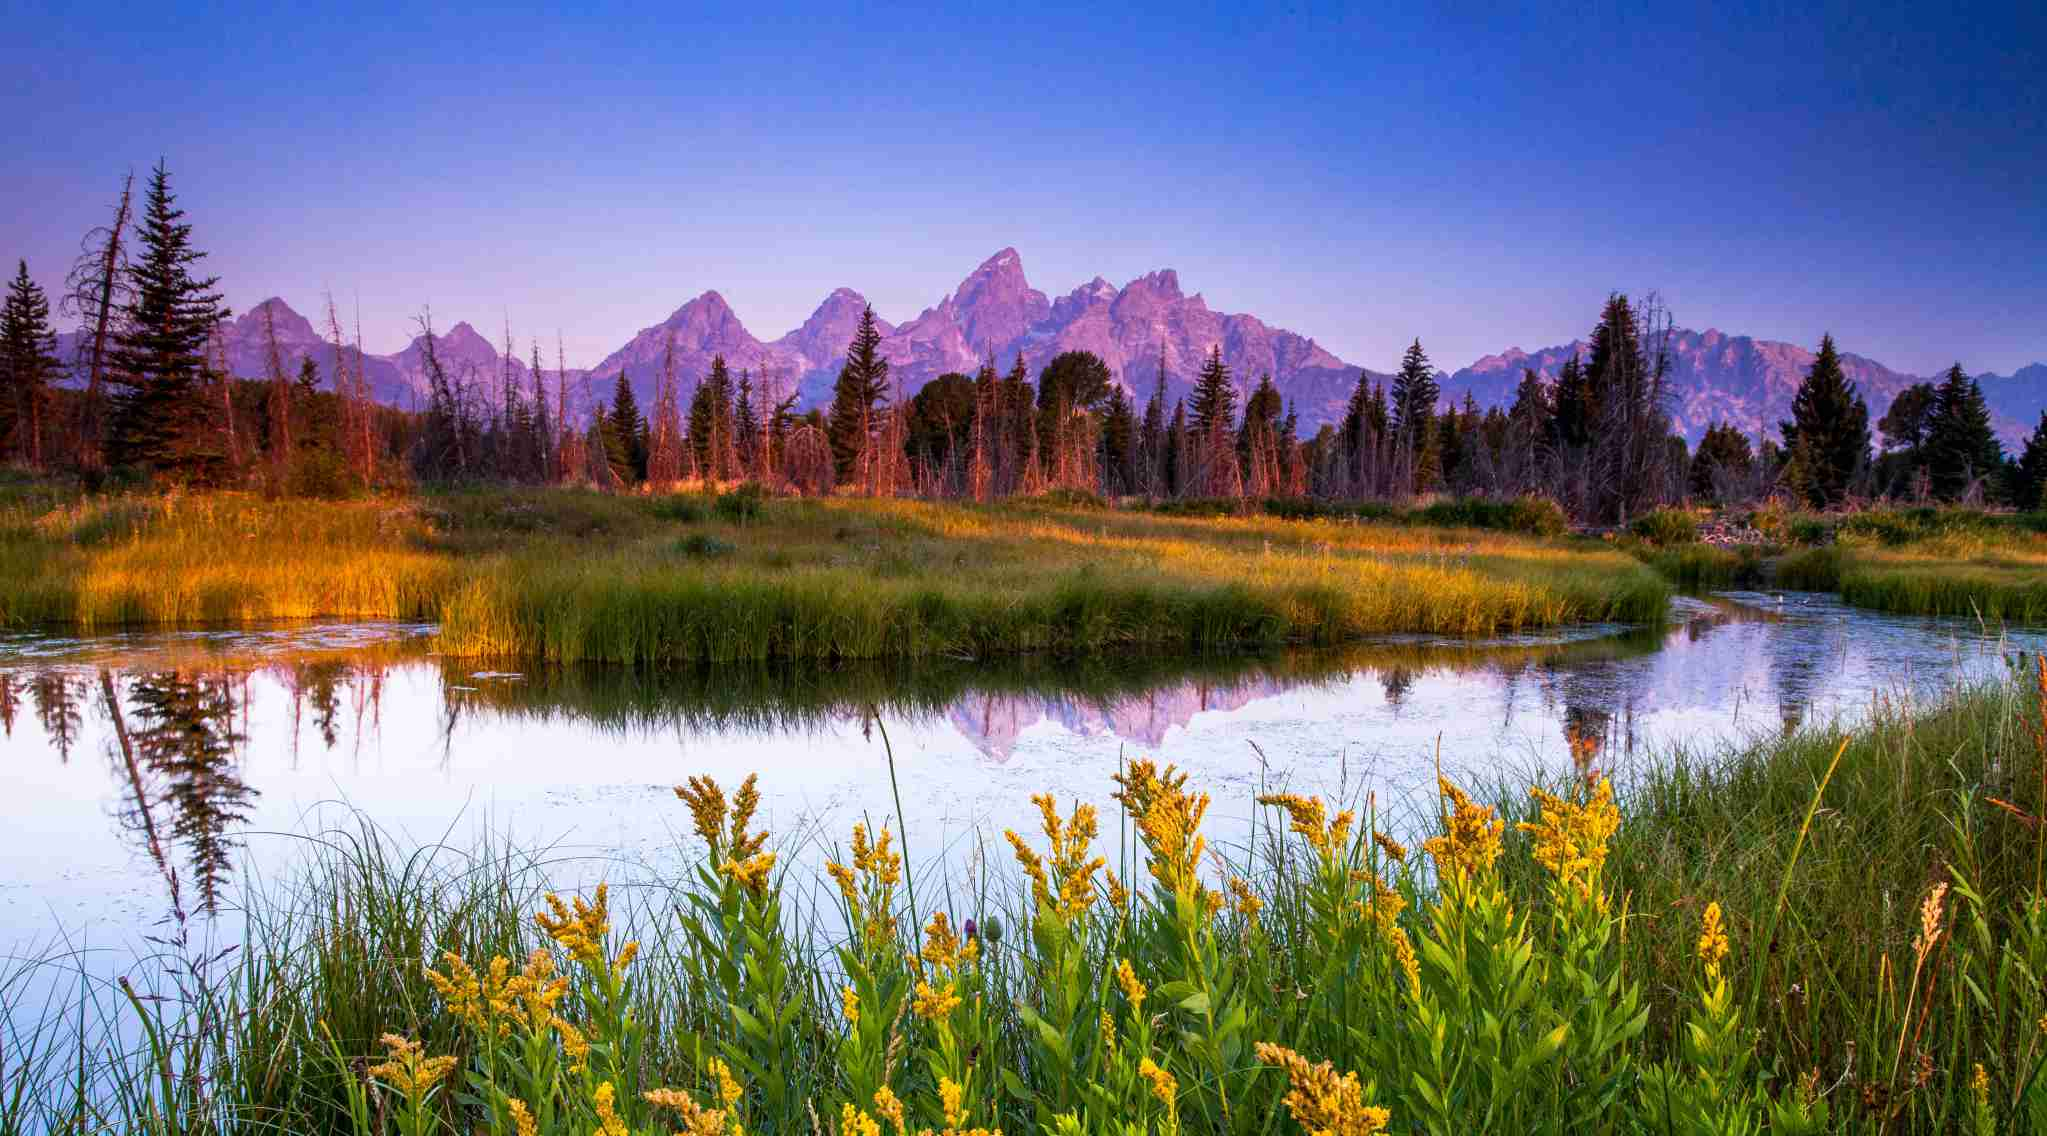 Taken down at Schwabacher Landing last week. Pretty nice sunrise and had the place to myself. I waded over through some marsh to capture these wildflowers as well as catch the reflection of the top of the Grand and Teewinot in the Snake River pool. (Photo by Steve Burns/Getty Images)